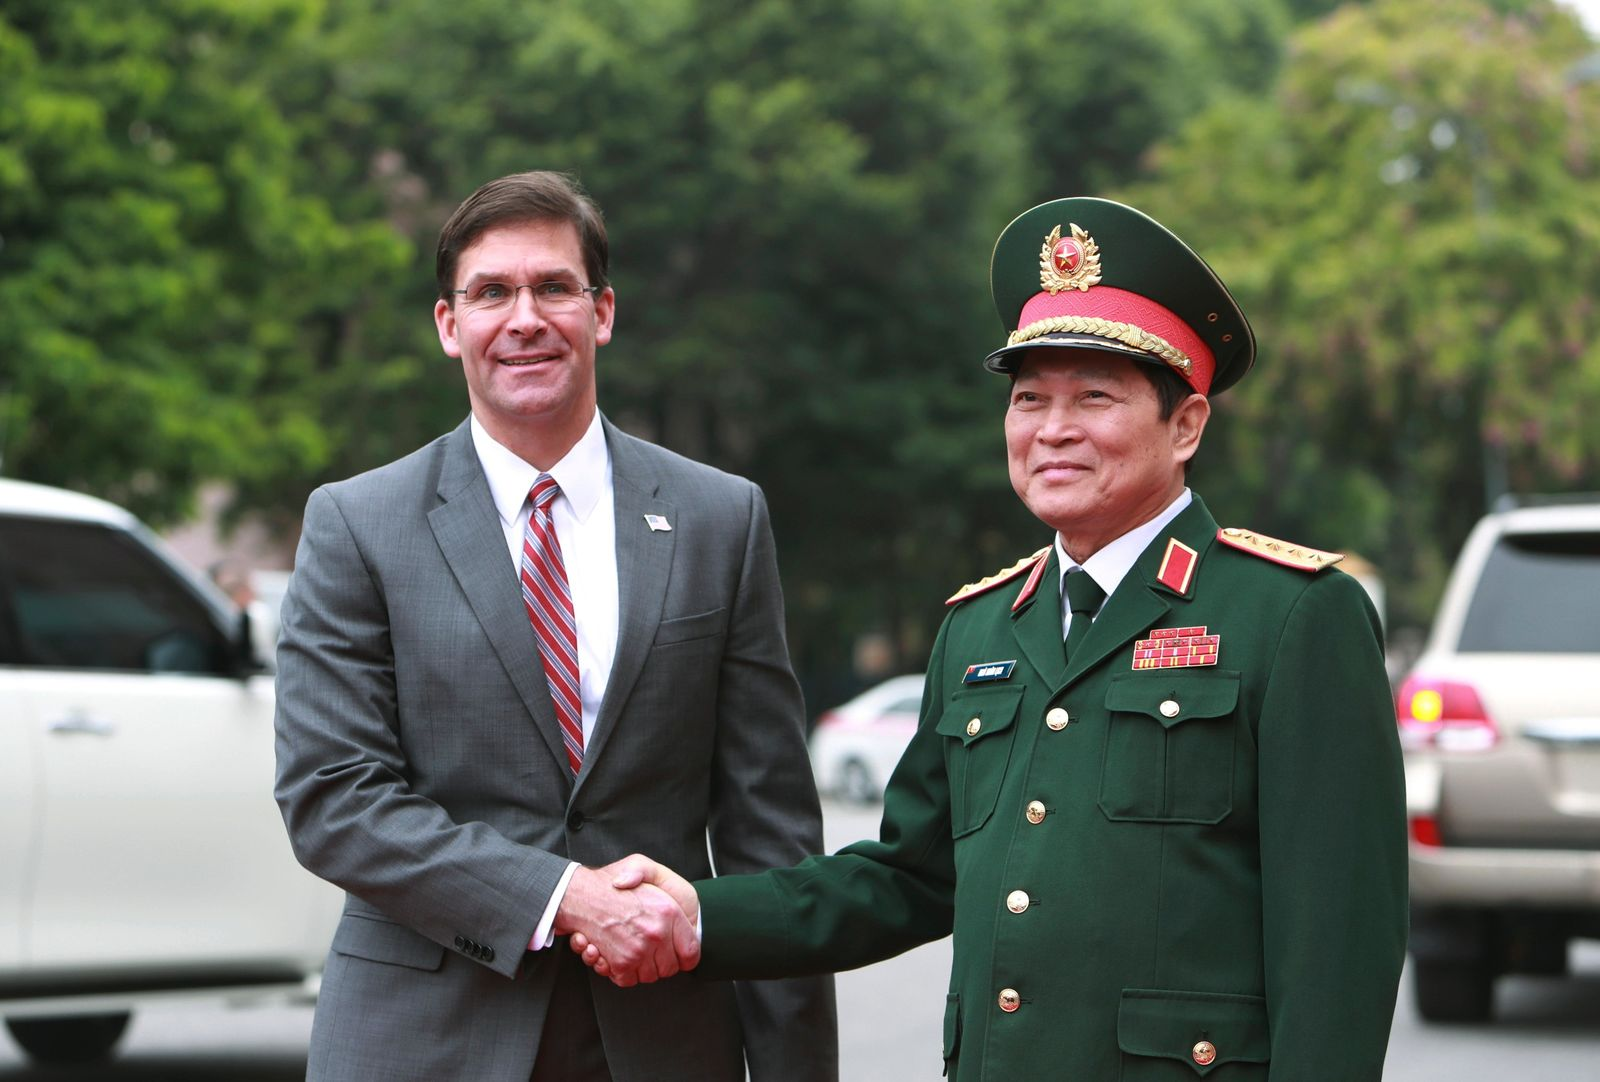 U.S. Defense Secretary Mark Esper, left, and Vietnamese Defense Minister Ngo Xuan Lich shake hands in Hanoi, Vietnam Wednesday, Nov. 20, 2019. (AP Photo/Hau Dinh)